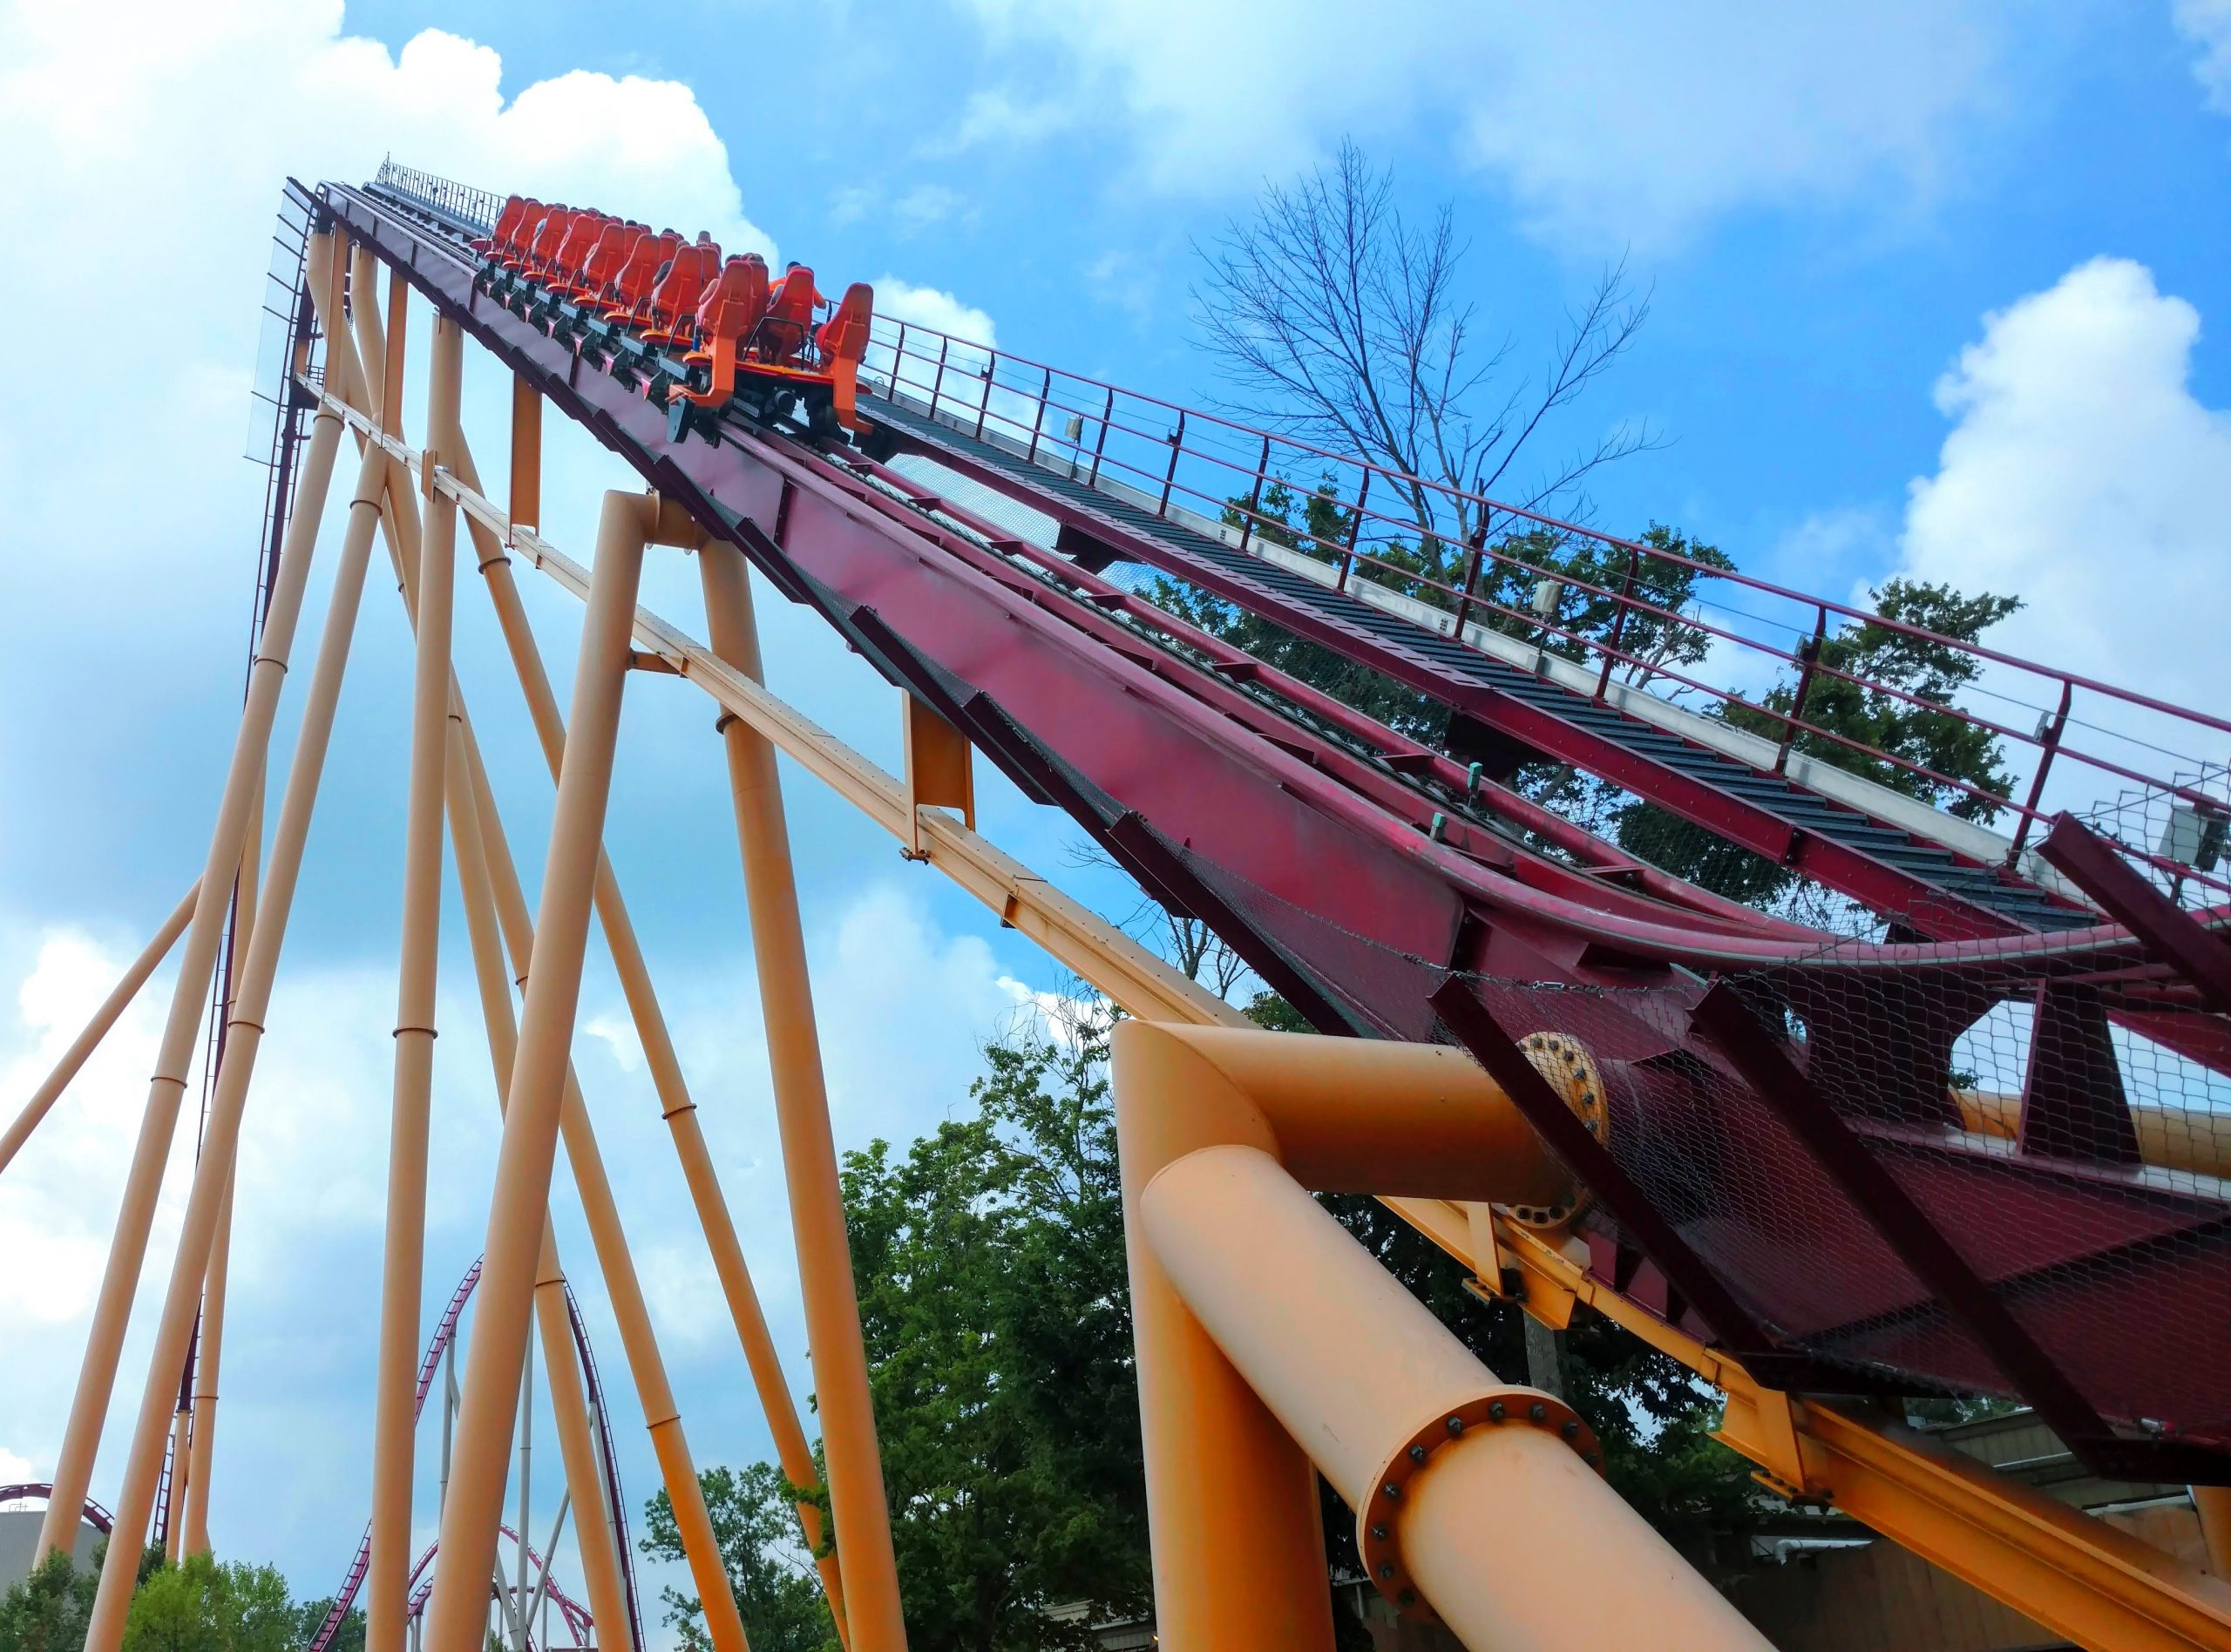 Kings Island is the largest amusement park in the midwest with 9 miles of coasters!